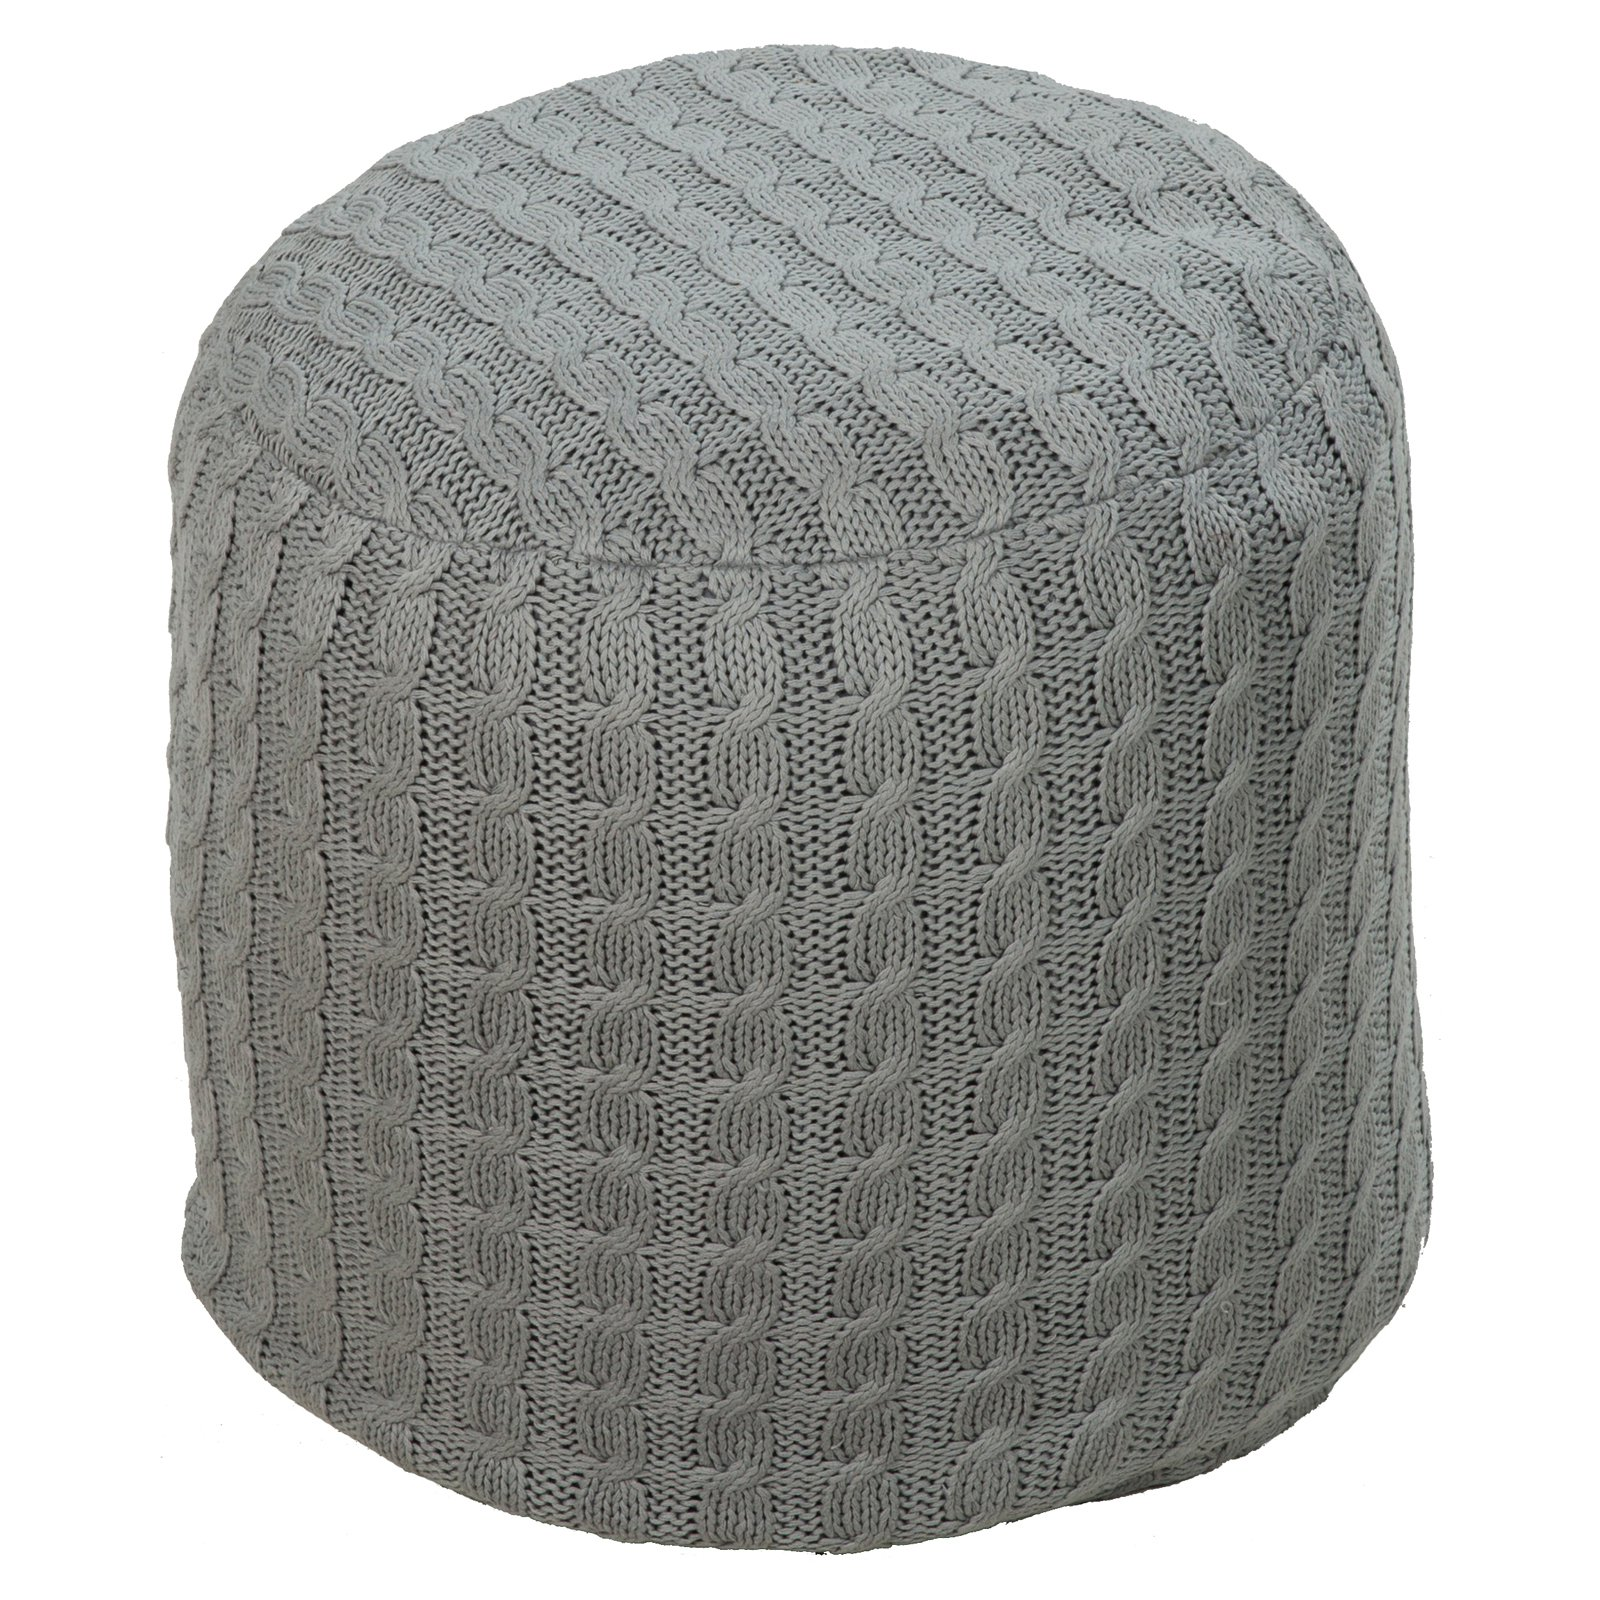 Surya 18 in. Round Pouf Oyster Gray by Surya Rug